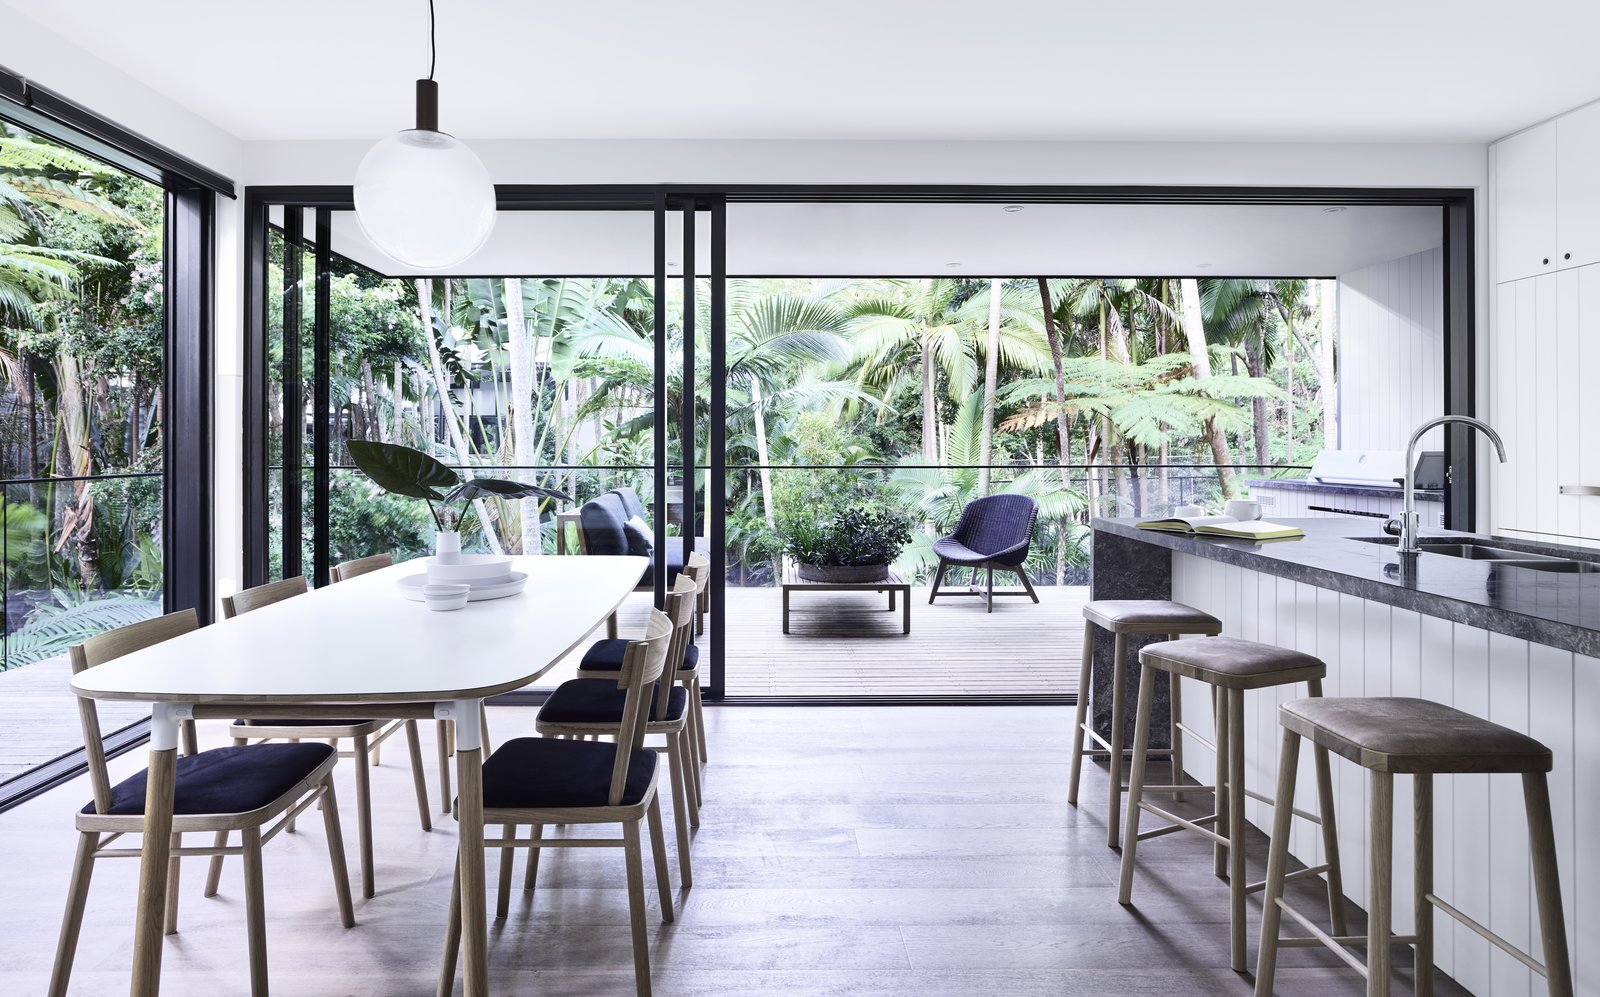 Reconnect With Nature at This Revamped Rainforest Retreat